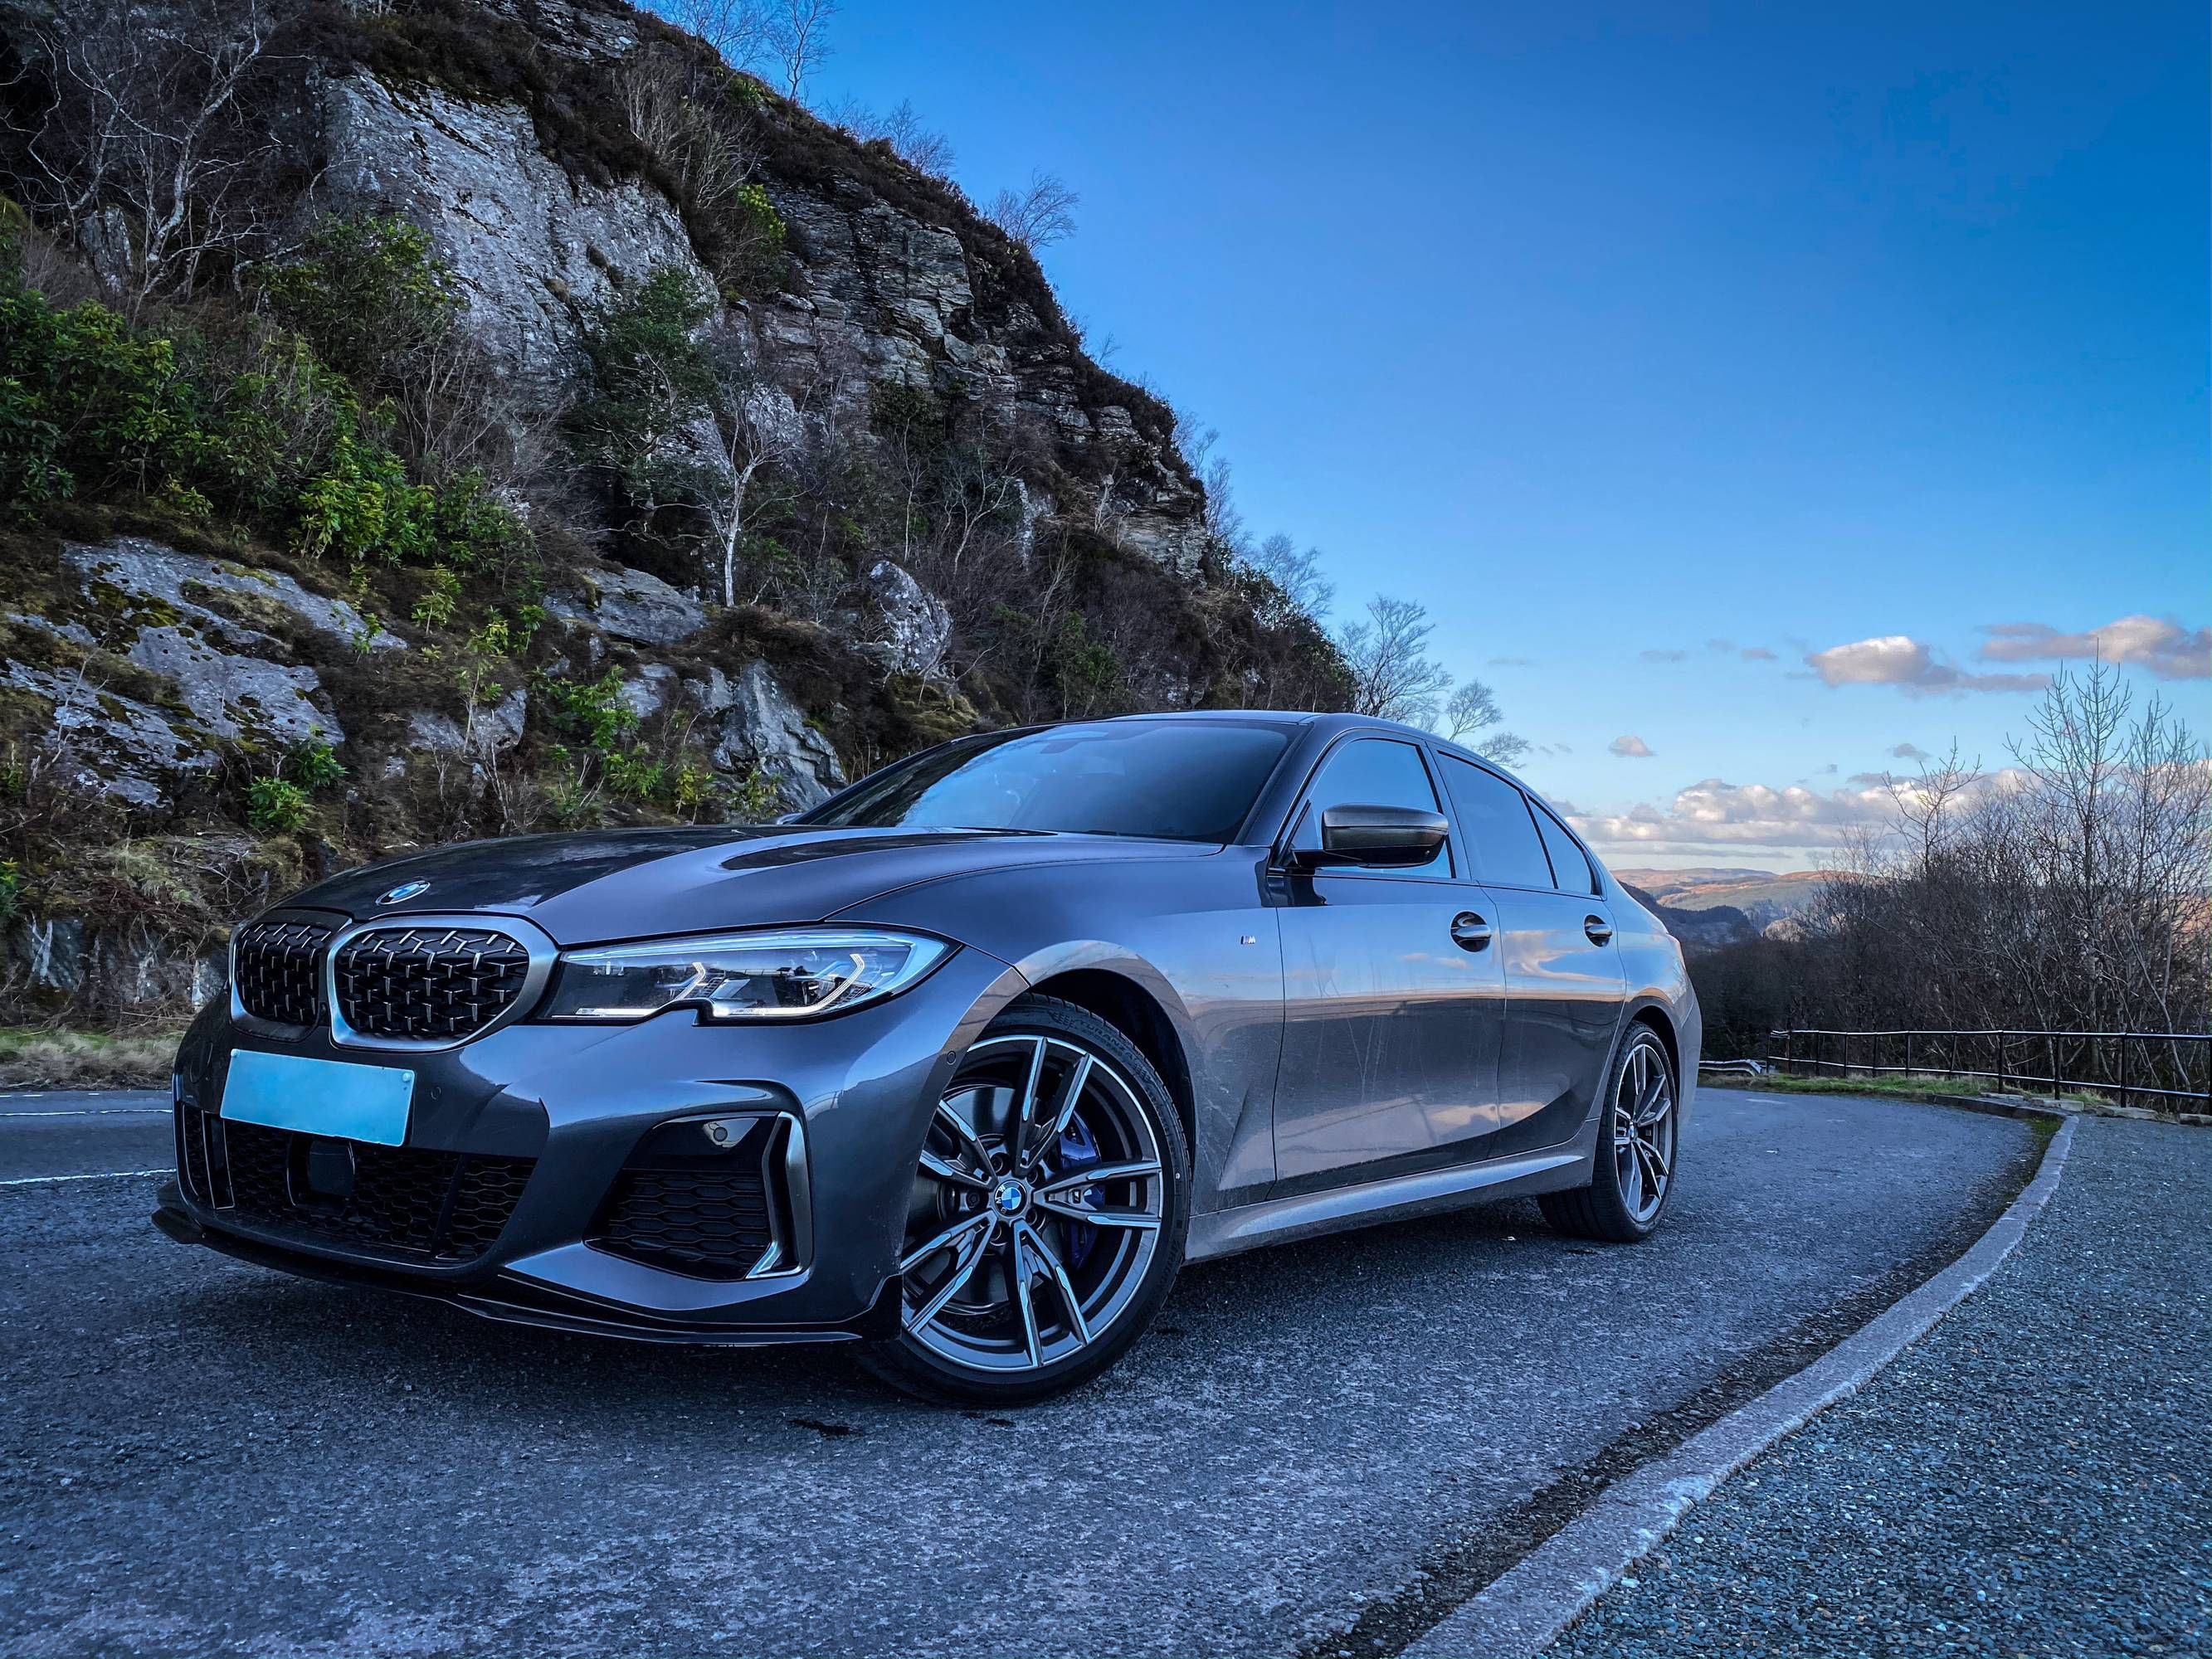 New M340i Sadly Been Barely Driven Due To Self Isolation Rules In 2020 Bmw Bmw Love Bmw Price